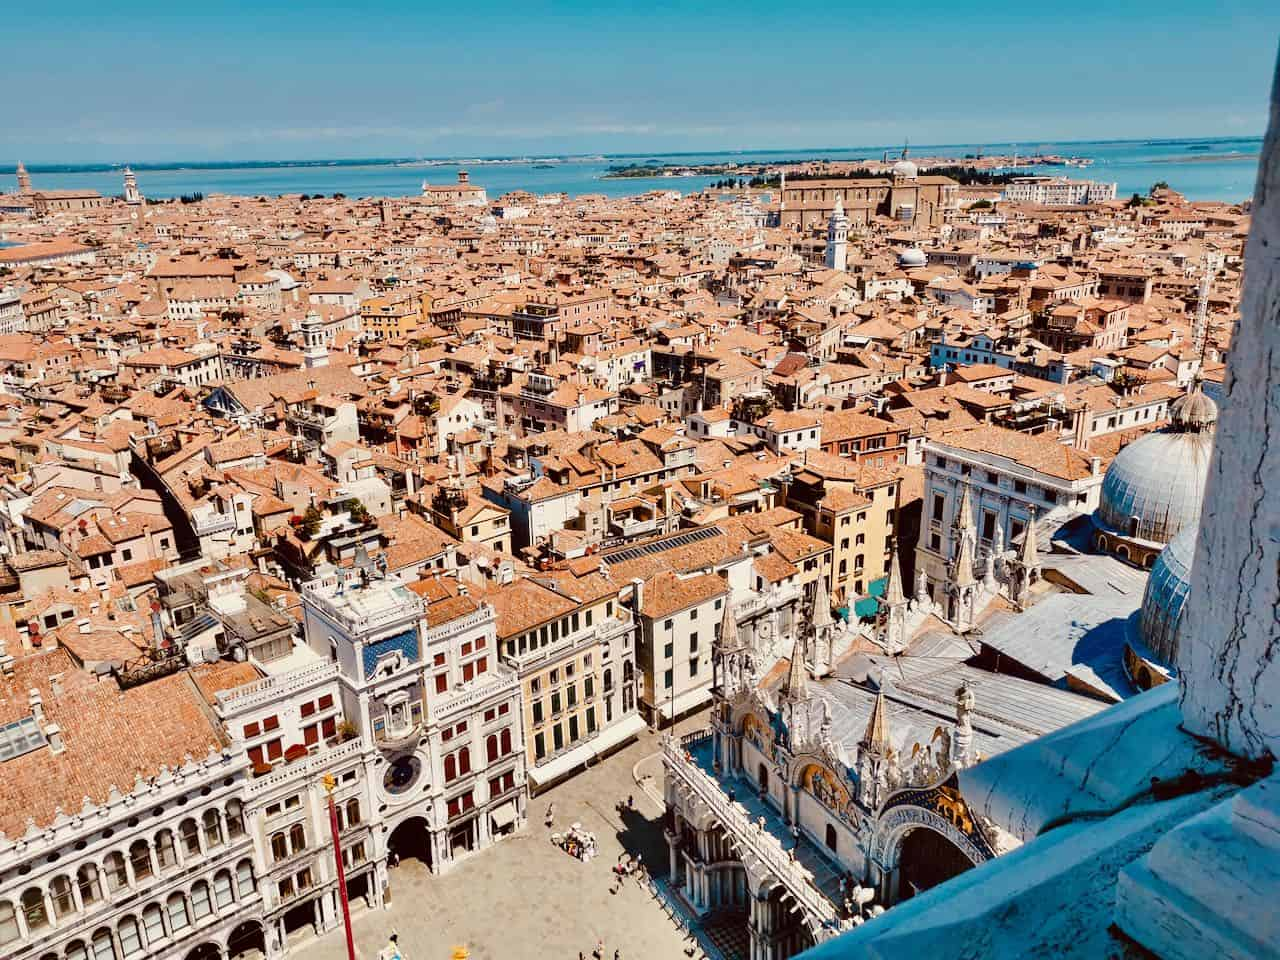 Views of Venice in Italy